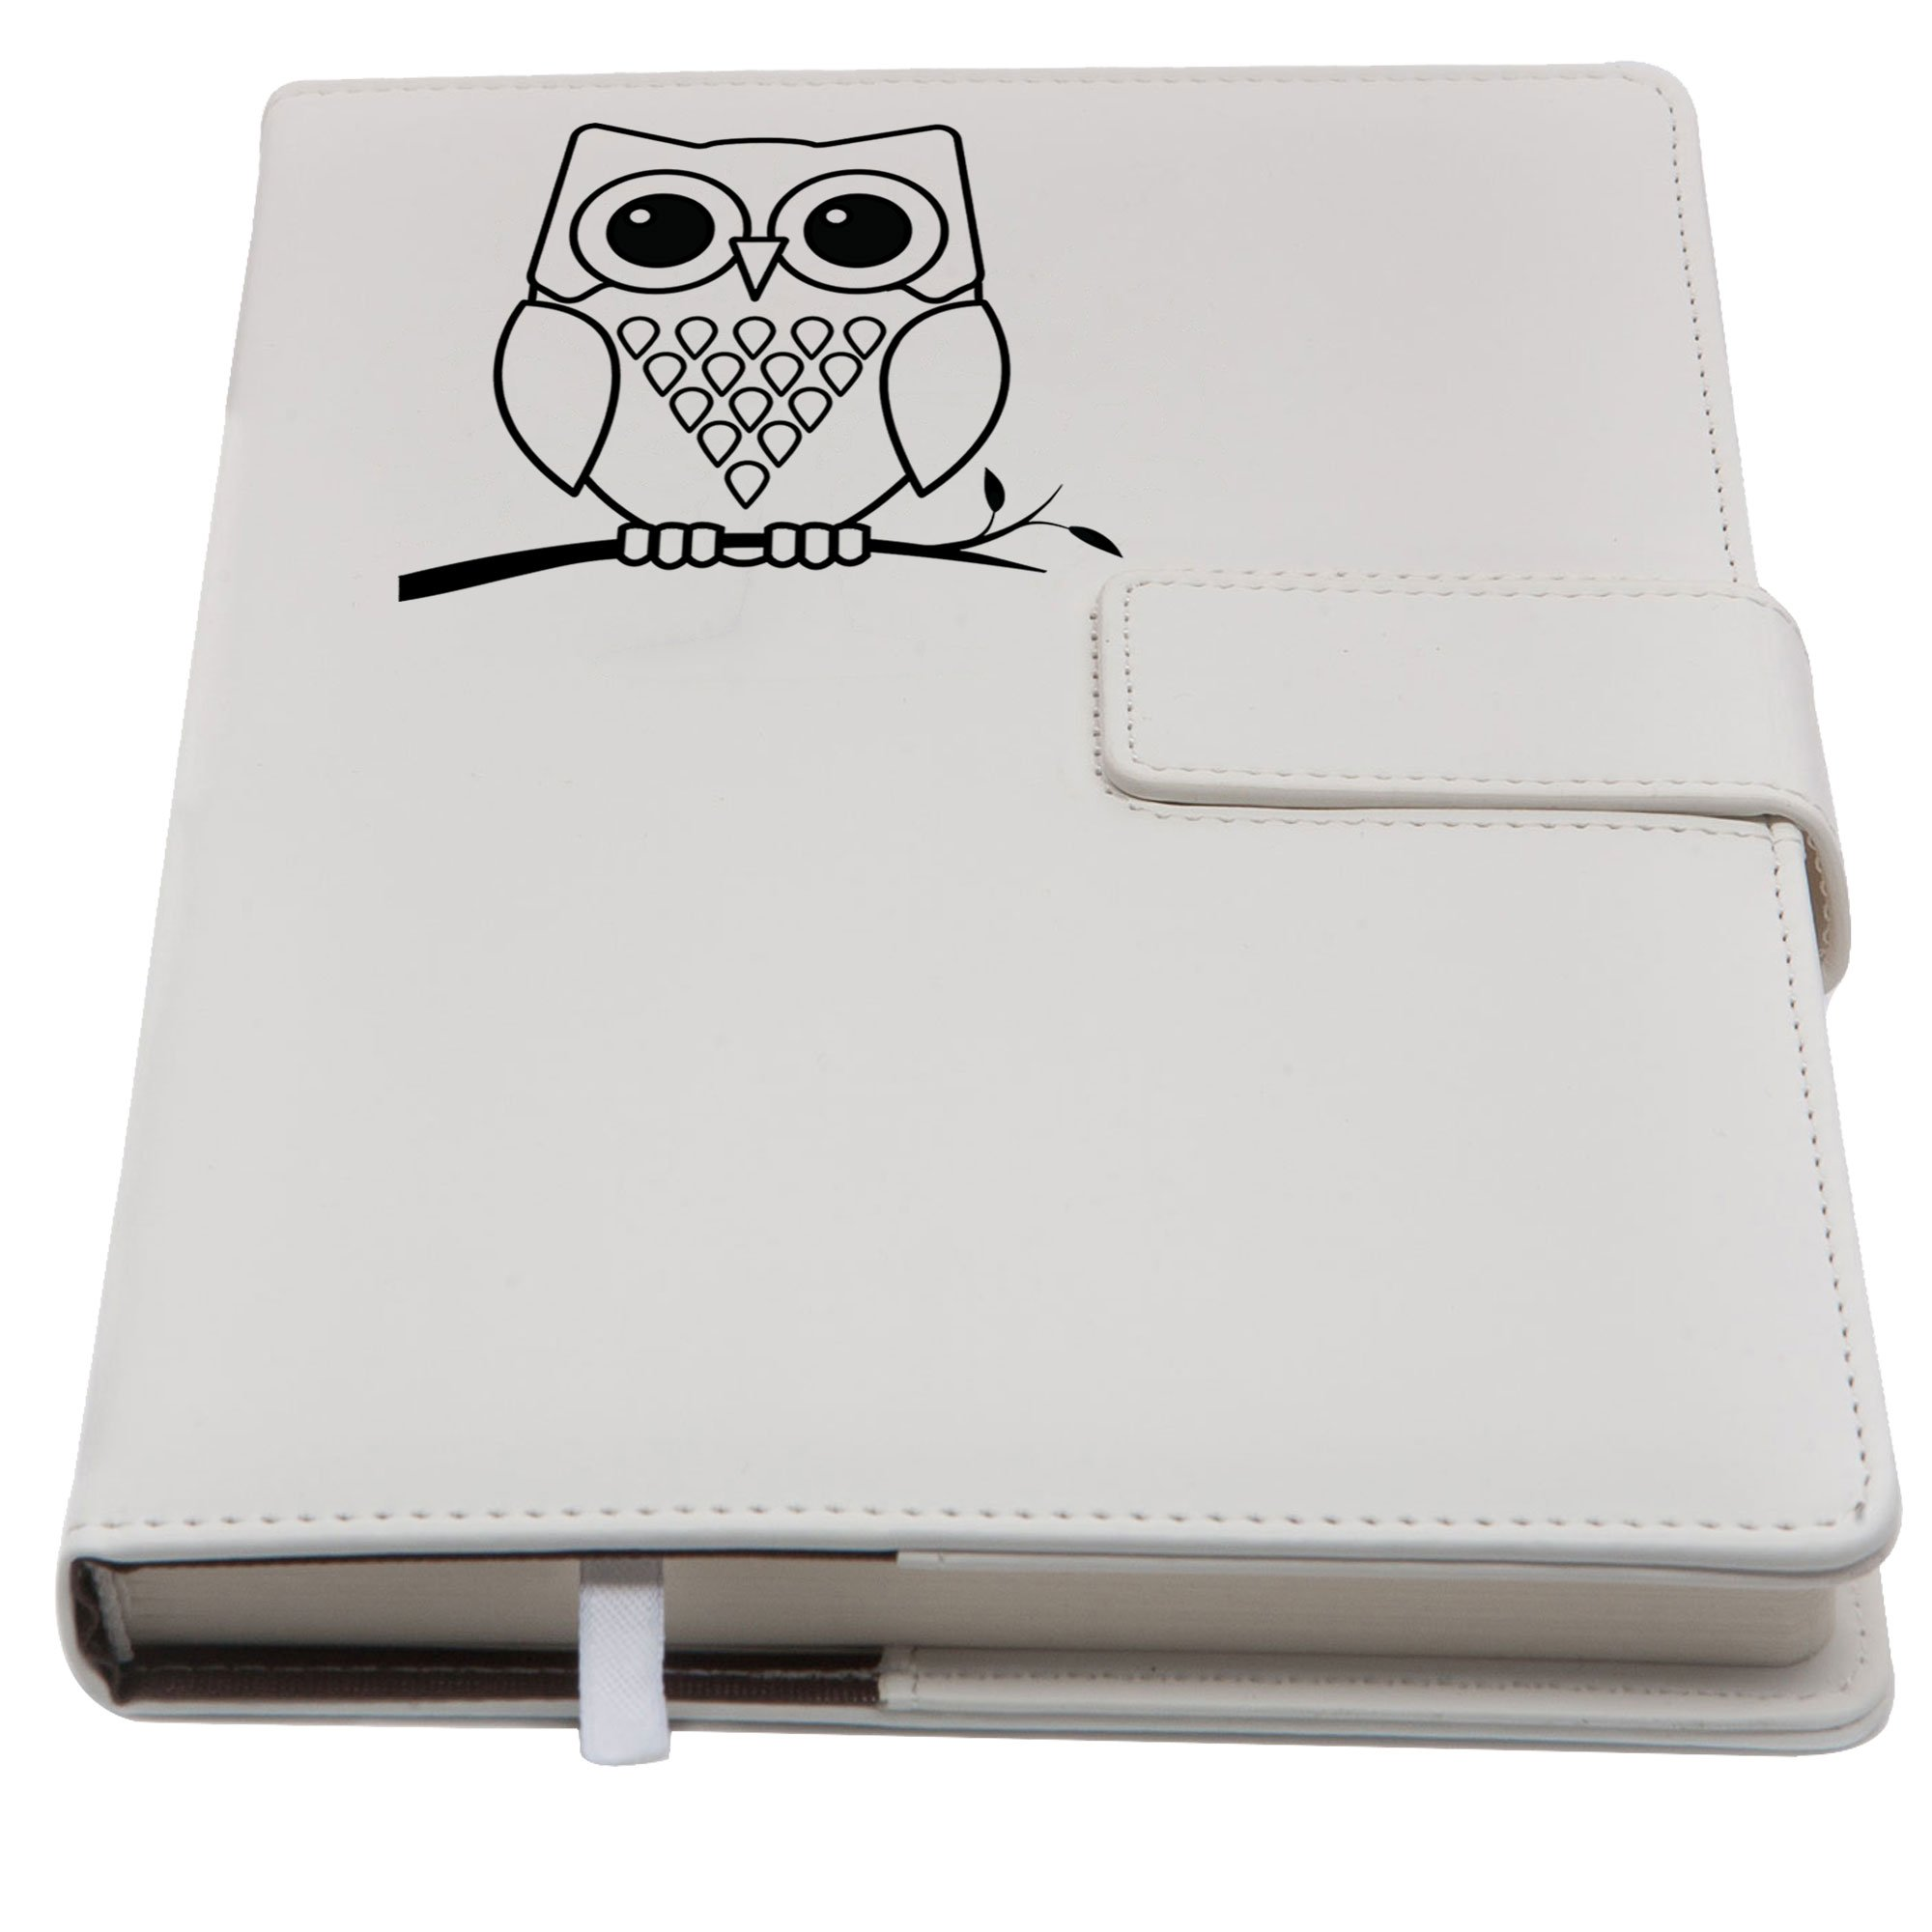 The Owl Refillable Writing Journal | Faux Leather Cover, Magnetic Clasp + Pen Loop | Blank Notebook | 200 Lined Pages, 5 x 8 Inches for Travel, Personal, Poetry | White | The Amazing Office